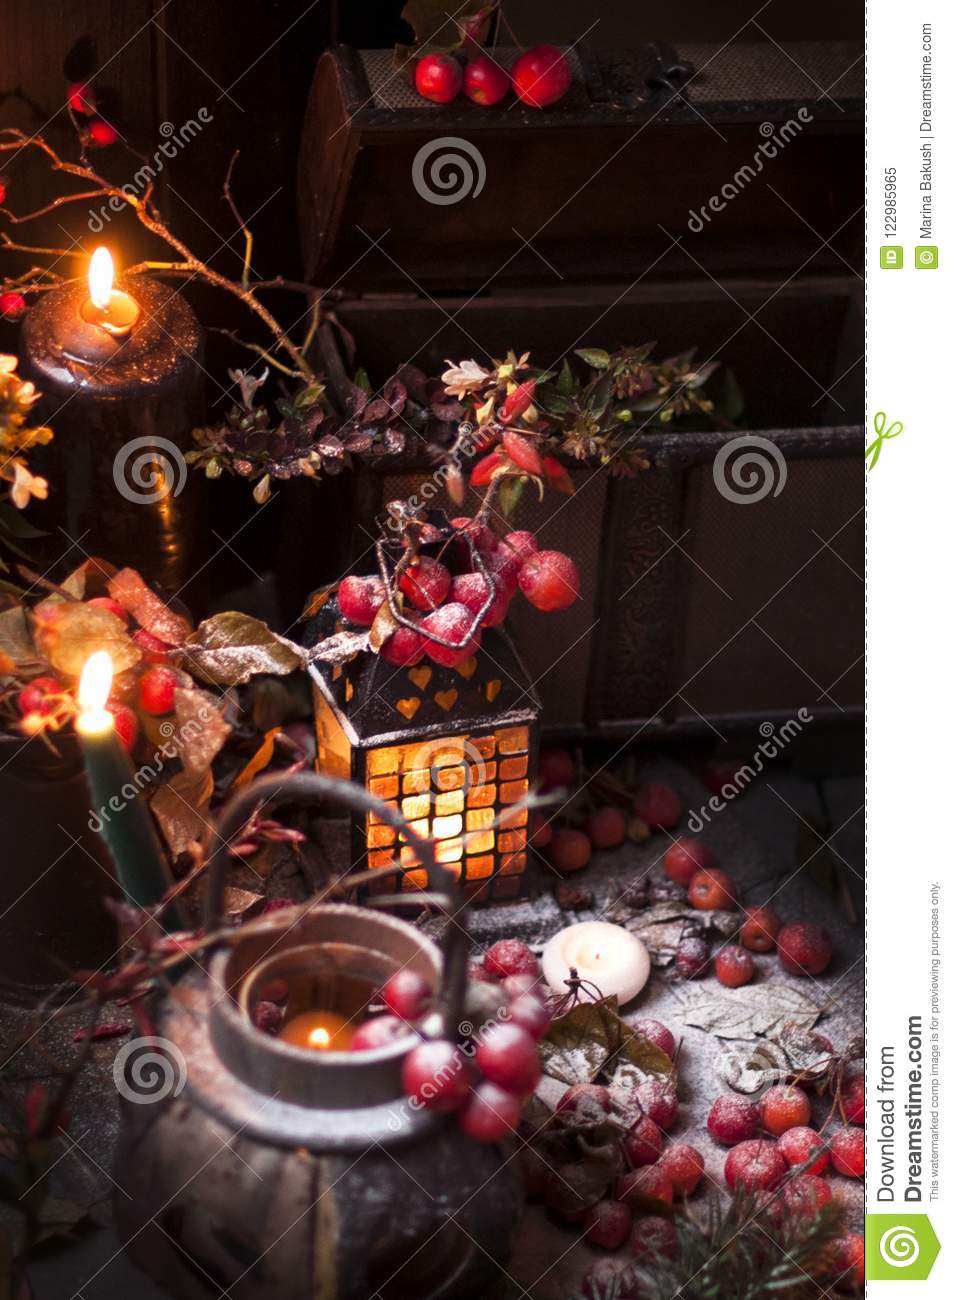 Download A Christmas Fairy Tale With Candles And Berries Under The Snow Decor Gifts